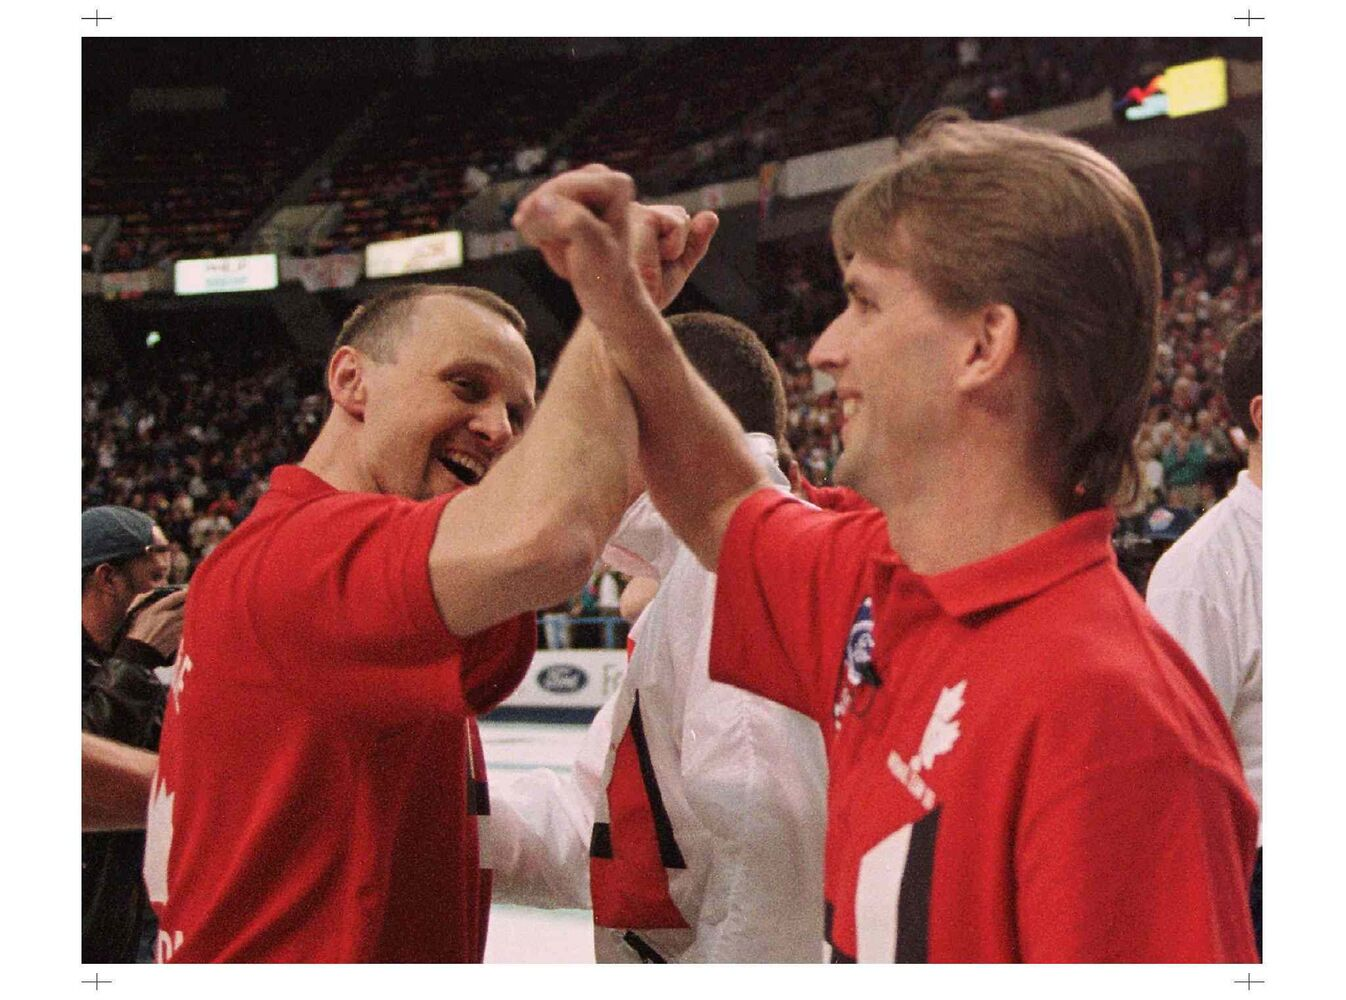 Team Canada skip Jeff Stoughton (right) celebrates with teammate Garry Vandenberghe after Canada defeated Scotland to win the 1996 World Curling Championships in Hamilton. (Moe Doiron / The Canadian Press Files)